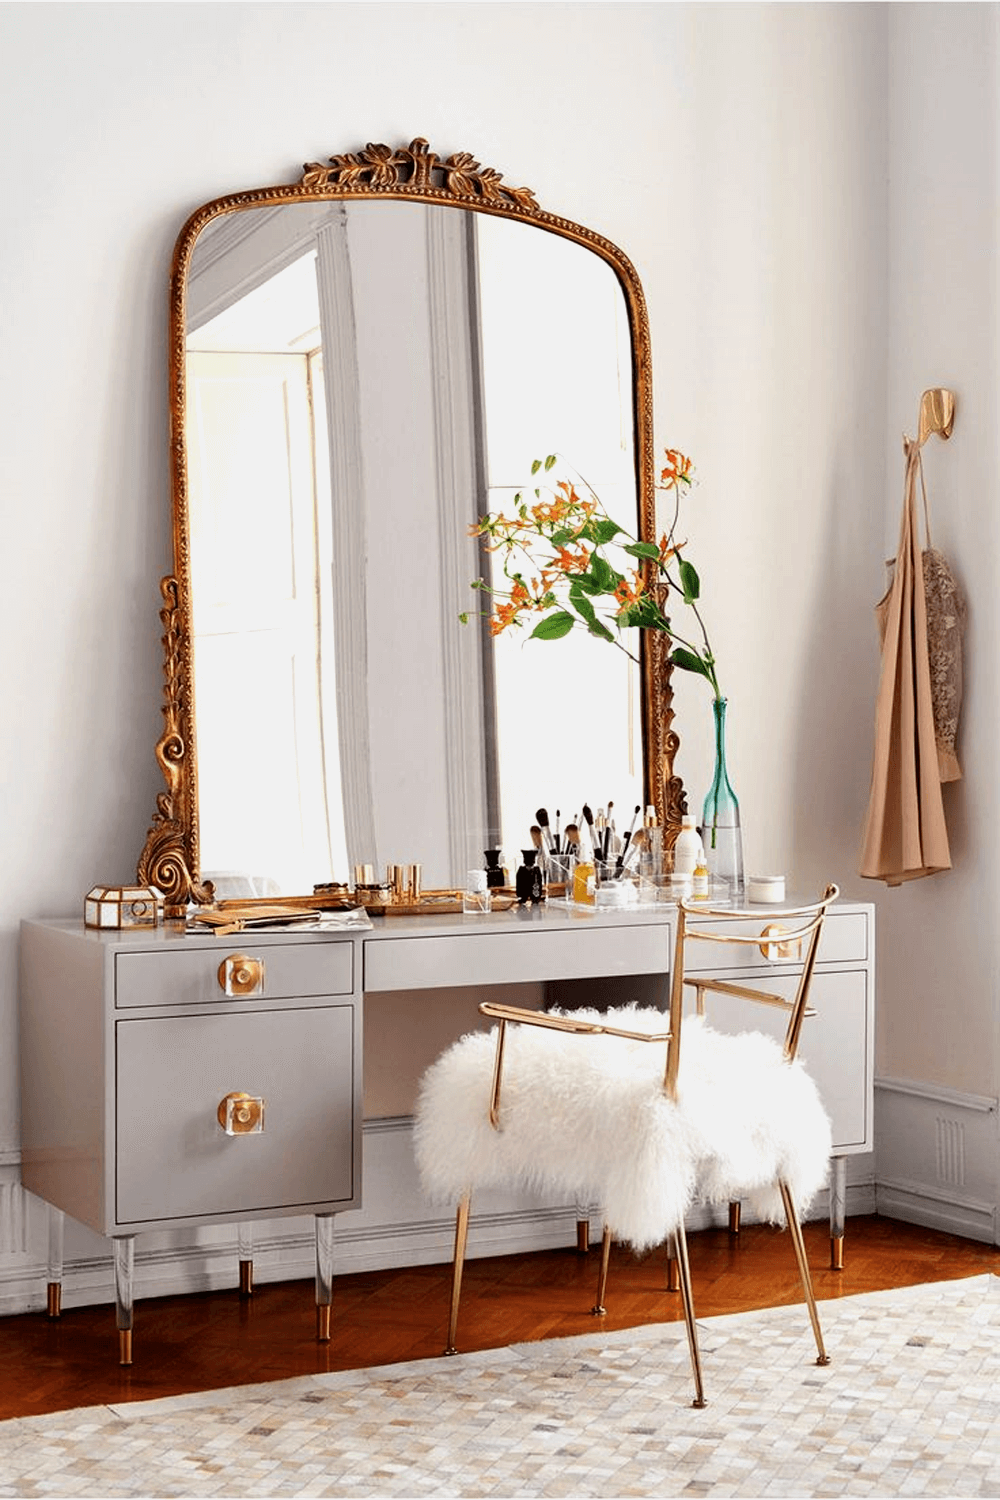 4 Popular Ideas For Makeup Vanity Mirror This One Example